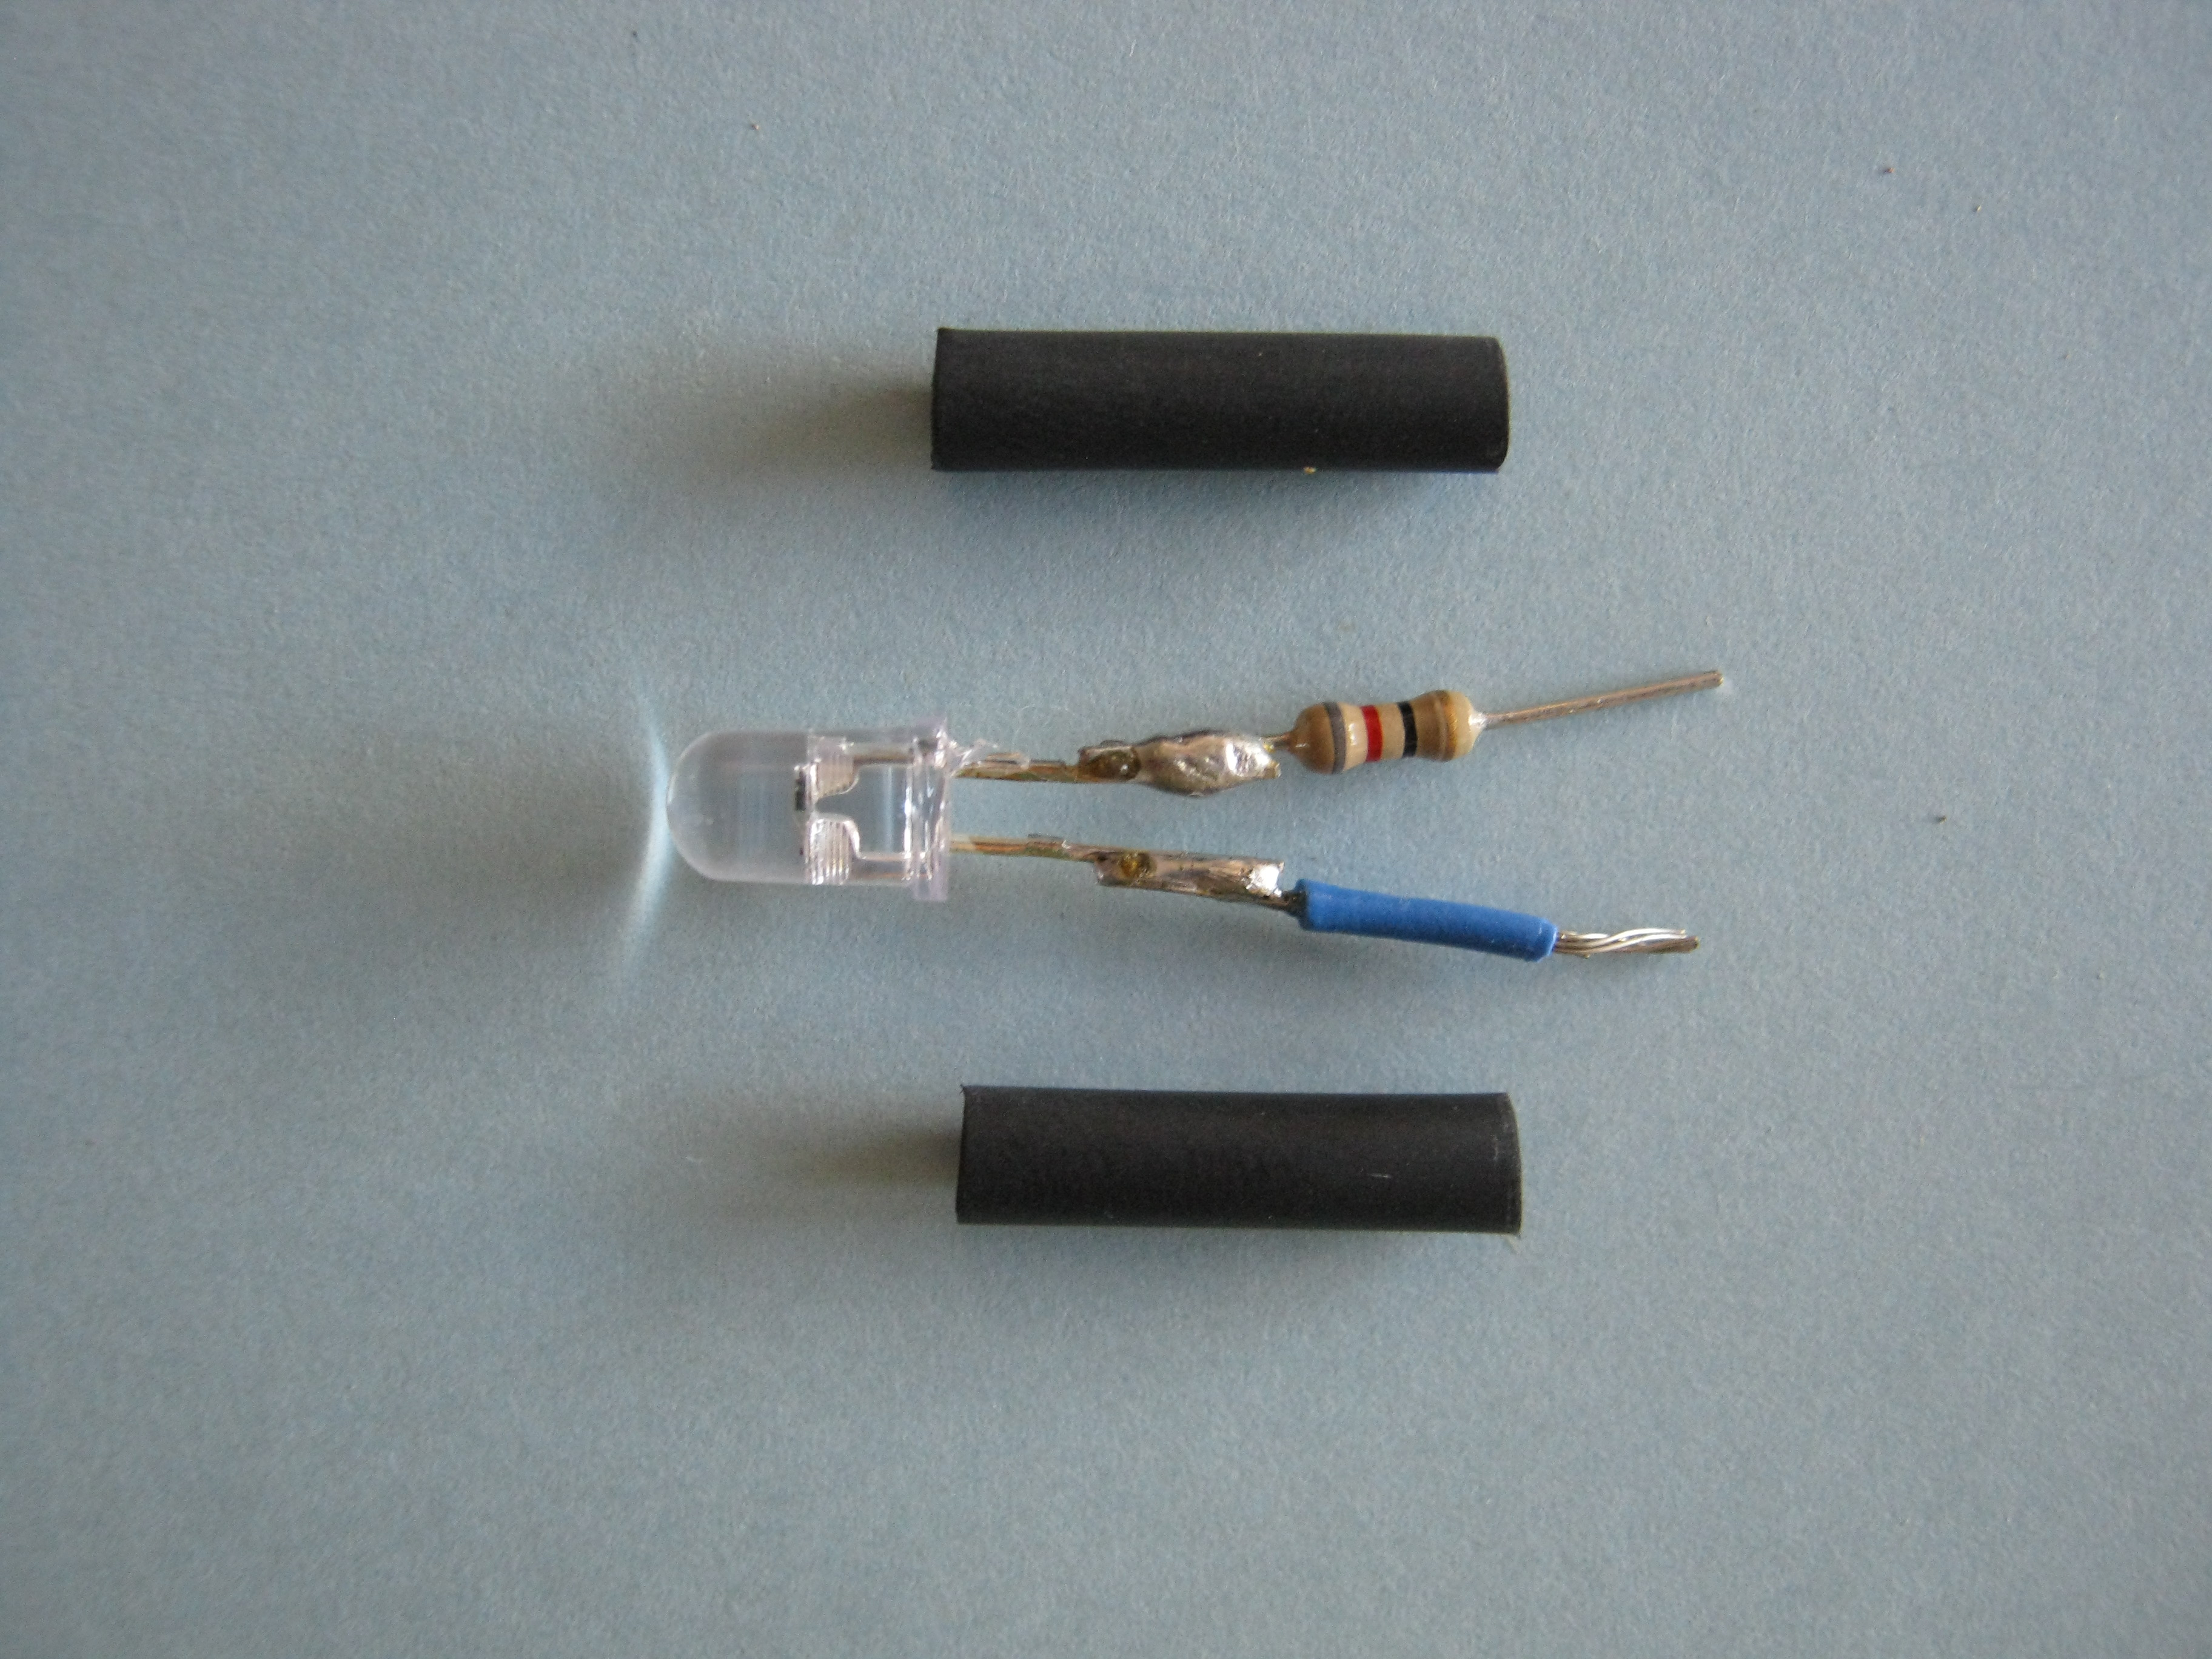 Picture of Insulate the LED Leads Prior to Attachment